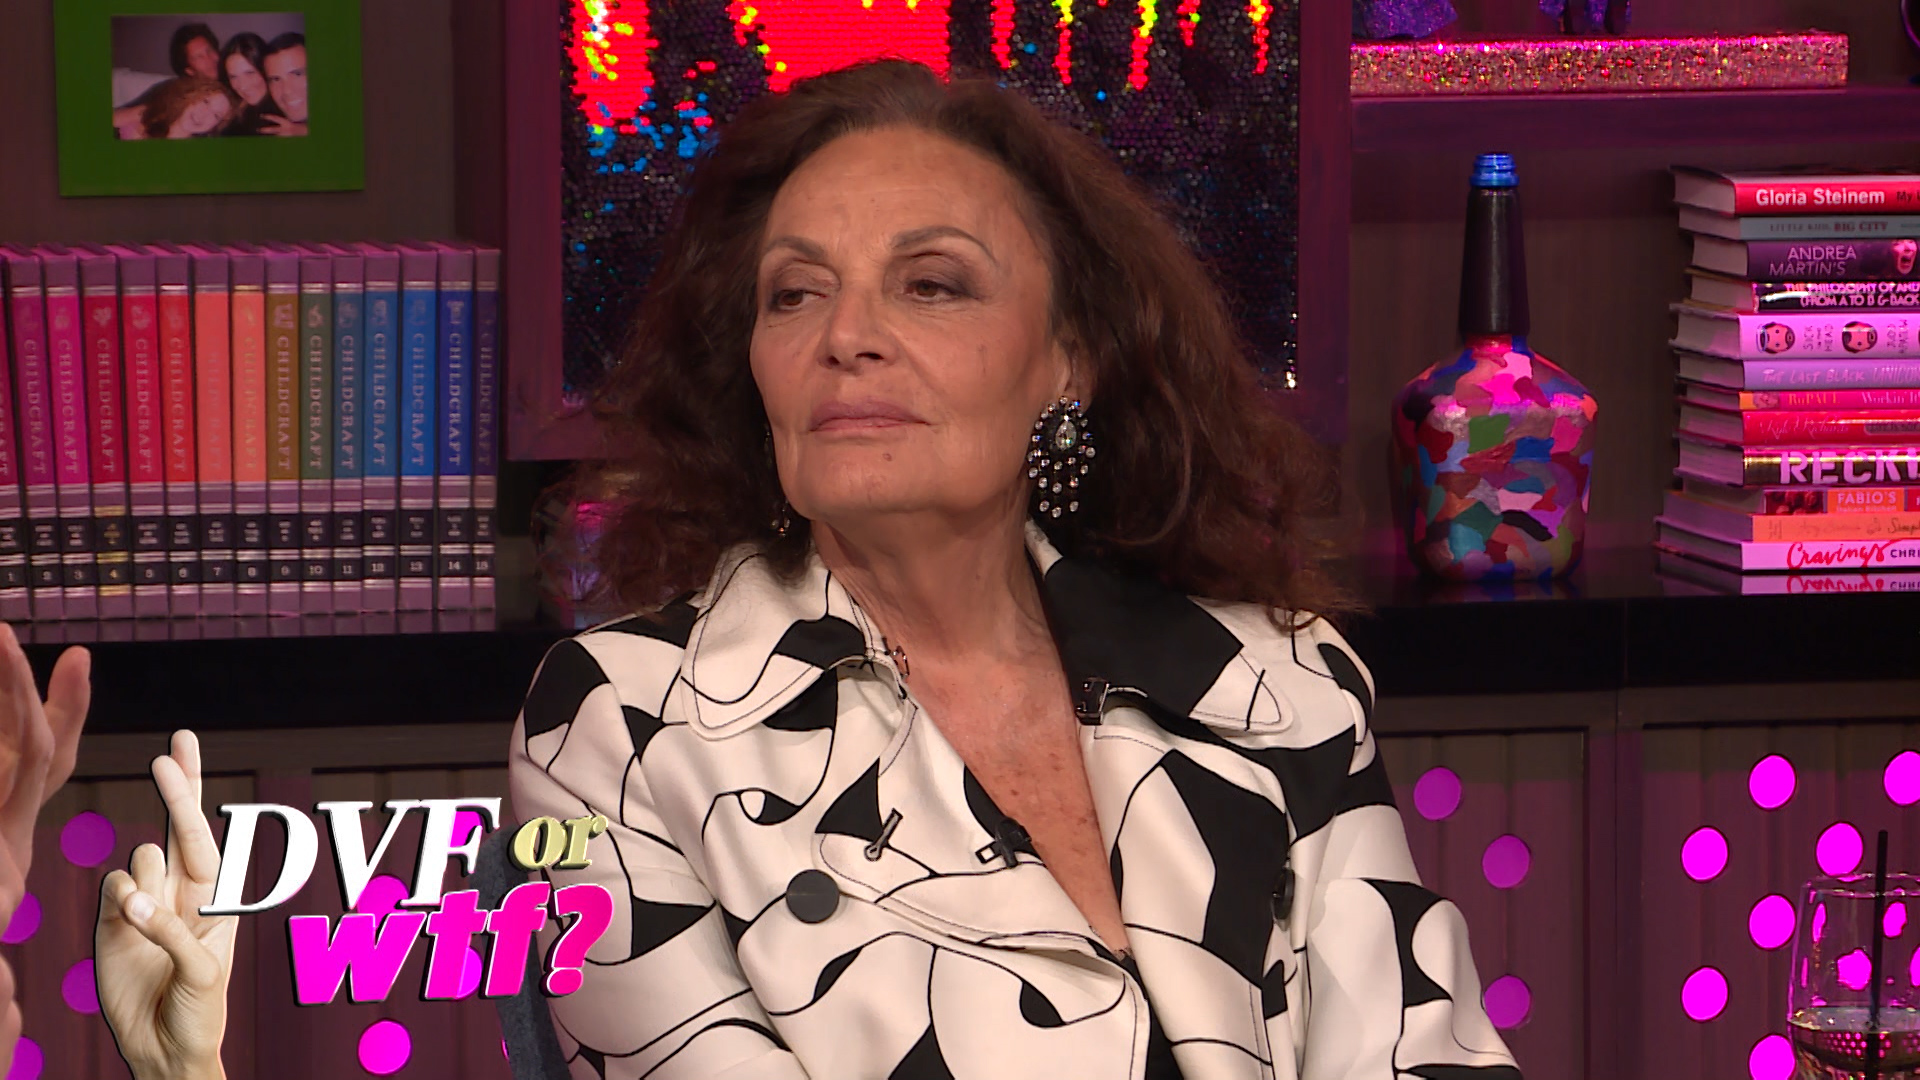 Are These Crazy Facts About Diane von Furstenberg True?